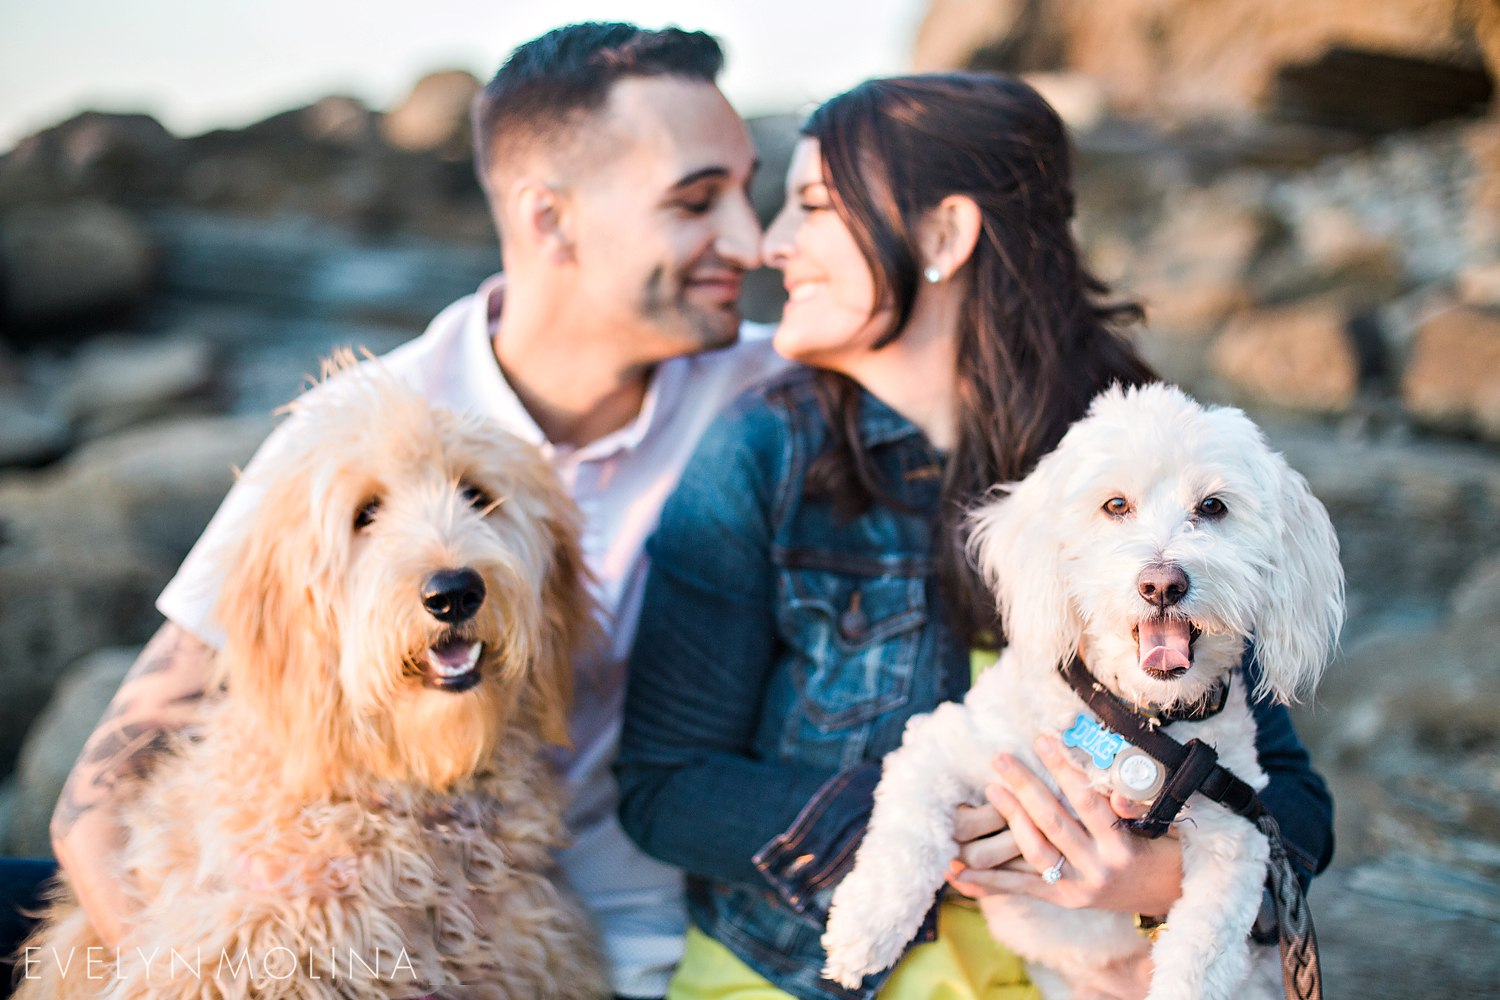 Sunset Cliffs Engagement Session - Carly and Alex - Evelyn Molina Photography_0019.jpg